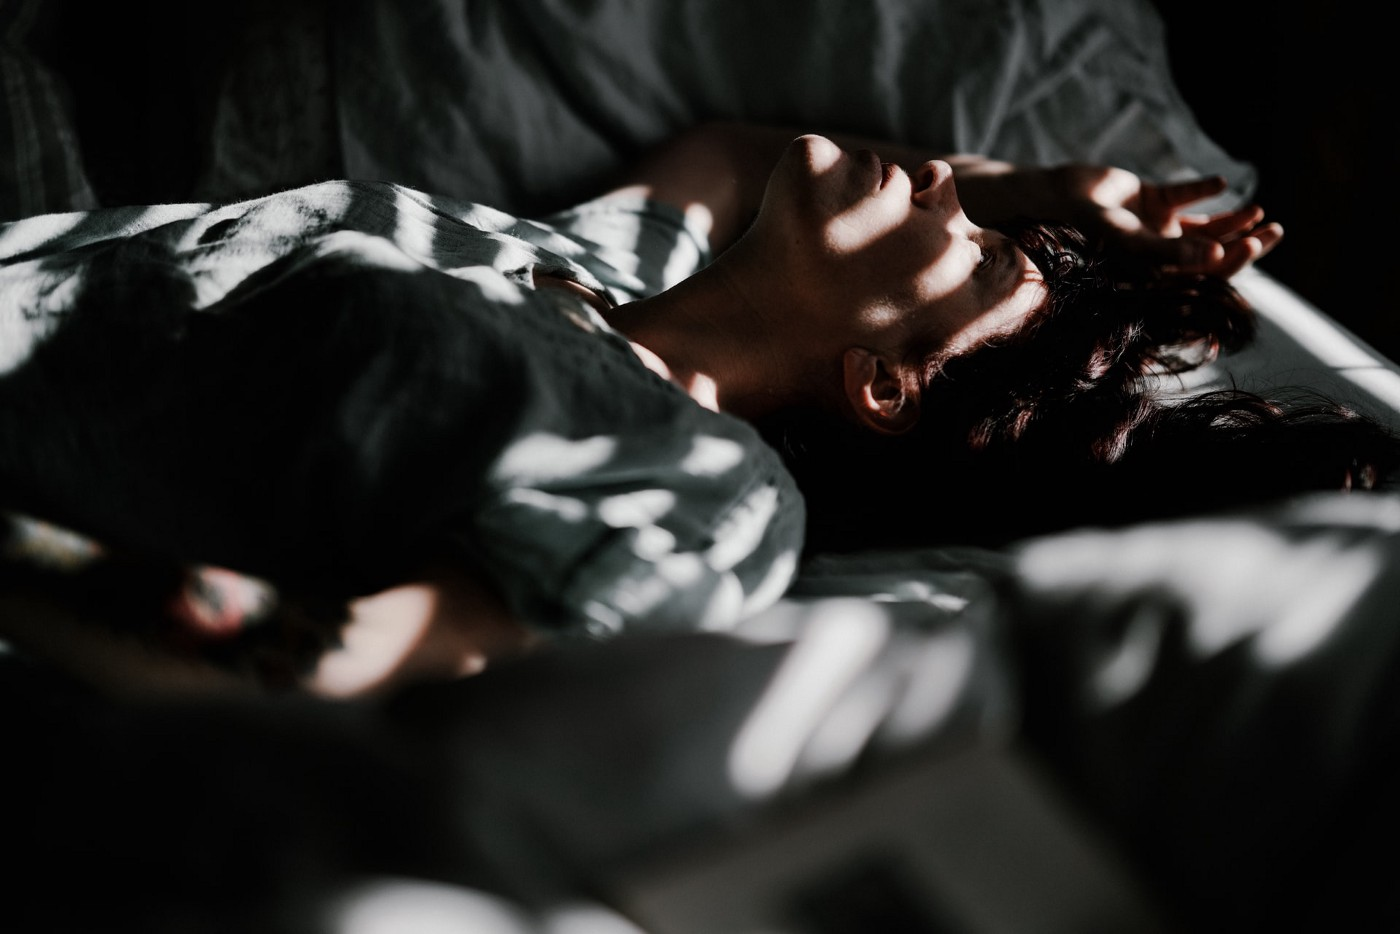 A women stretches out in her bed.